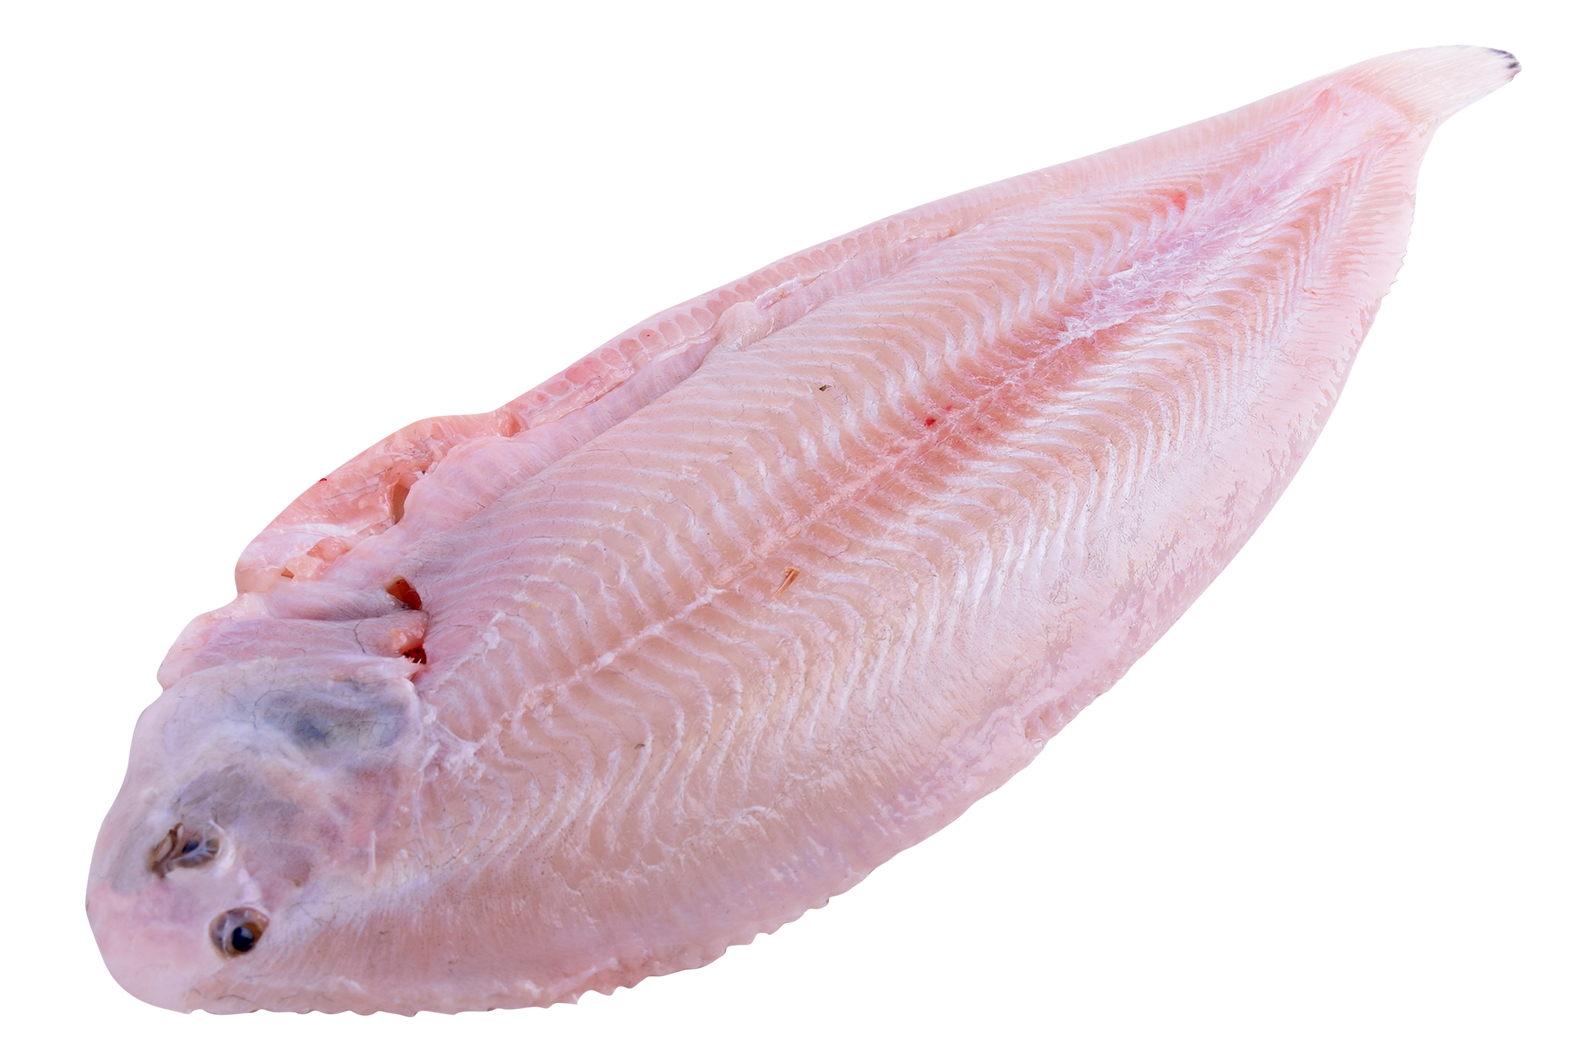 Productafbeelding DOVER SOLE SKINLESS SIZE 600-650GR